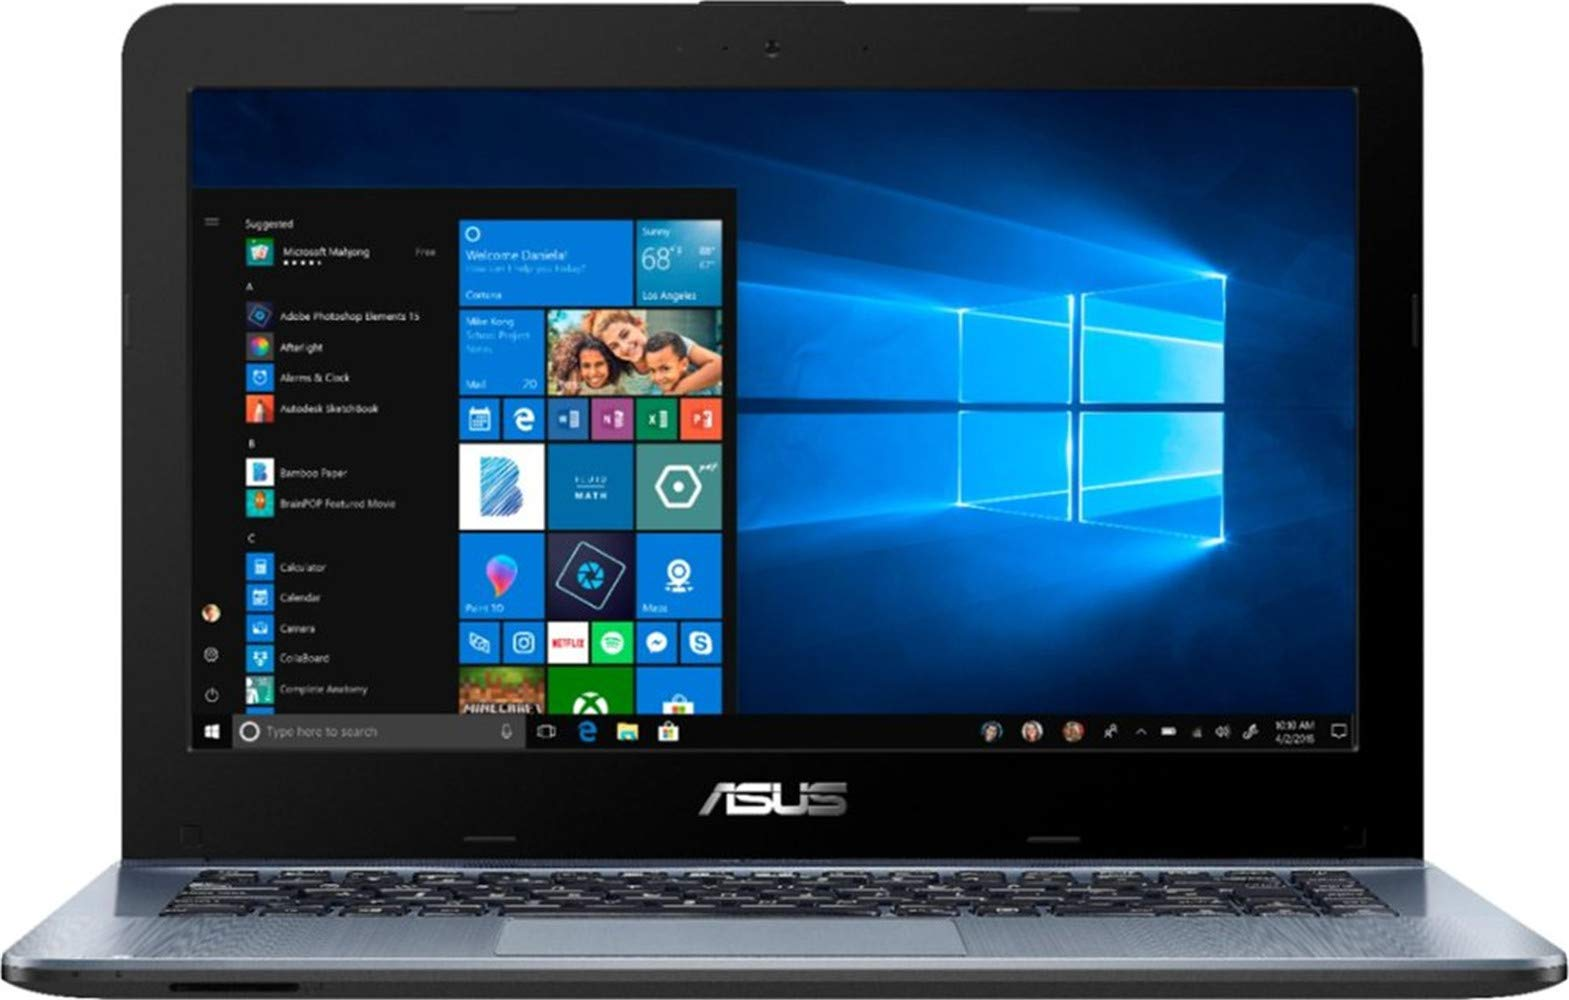 ASUS Vivobook 2019 Premium 14 HD Non-Touch Laptop Notebook Computer, 2-Core AMD A6 2.6GHz, 8GB DDR4 RAM, 500GB HDD 1